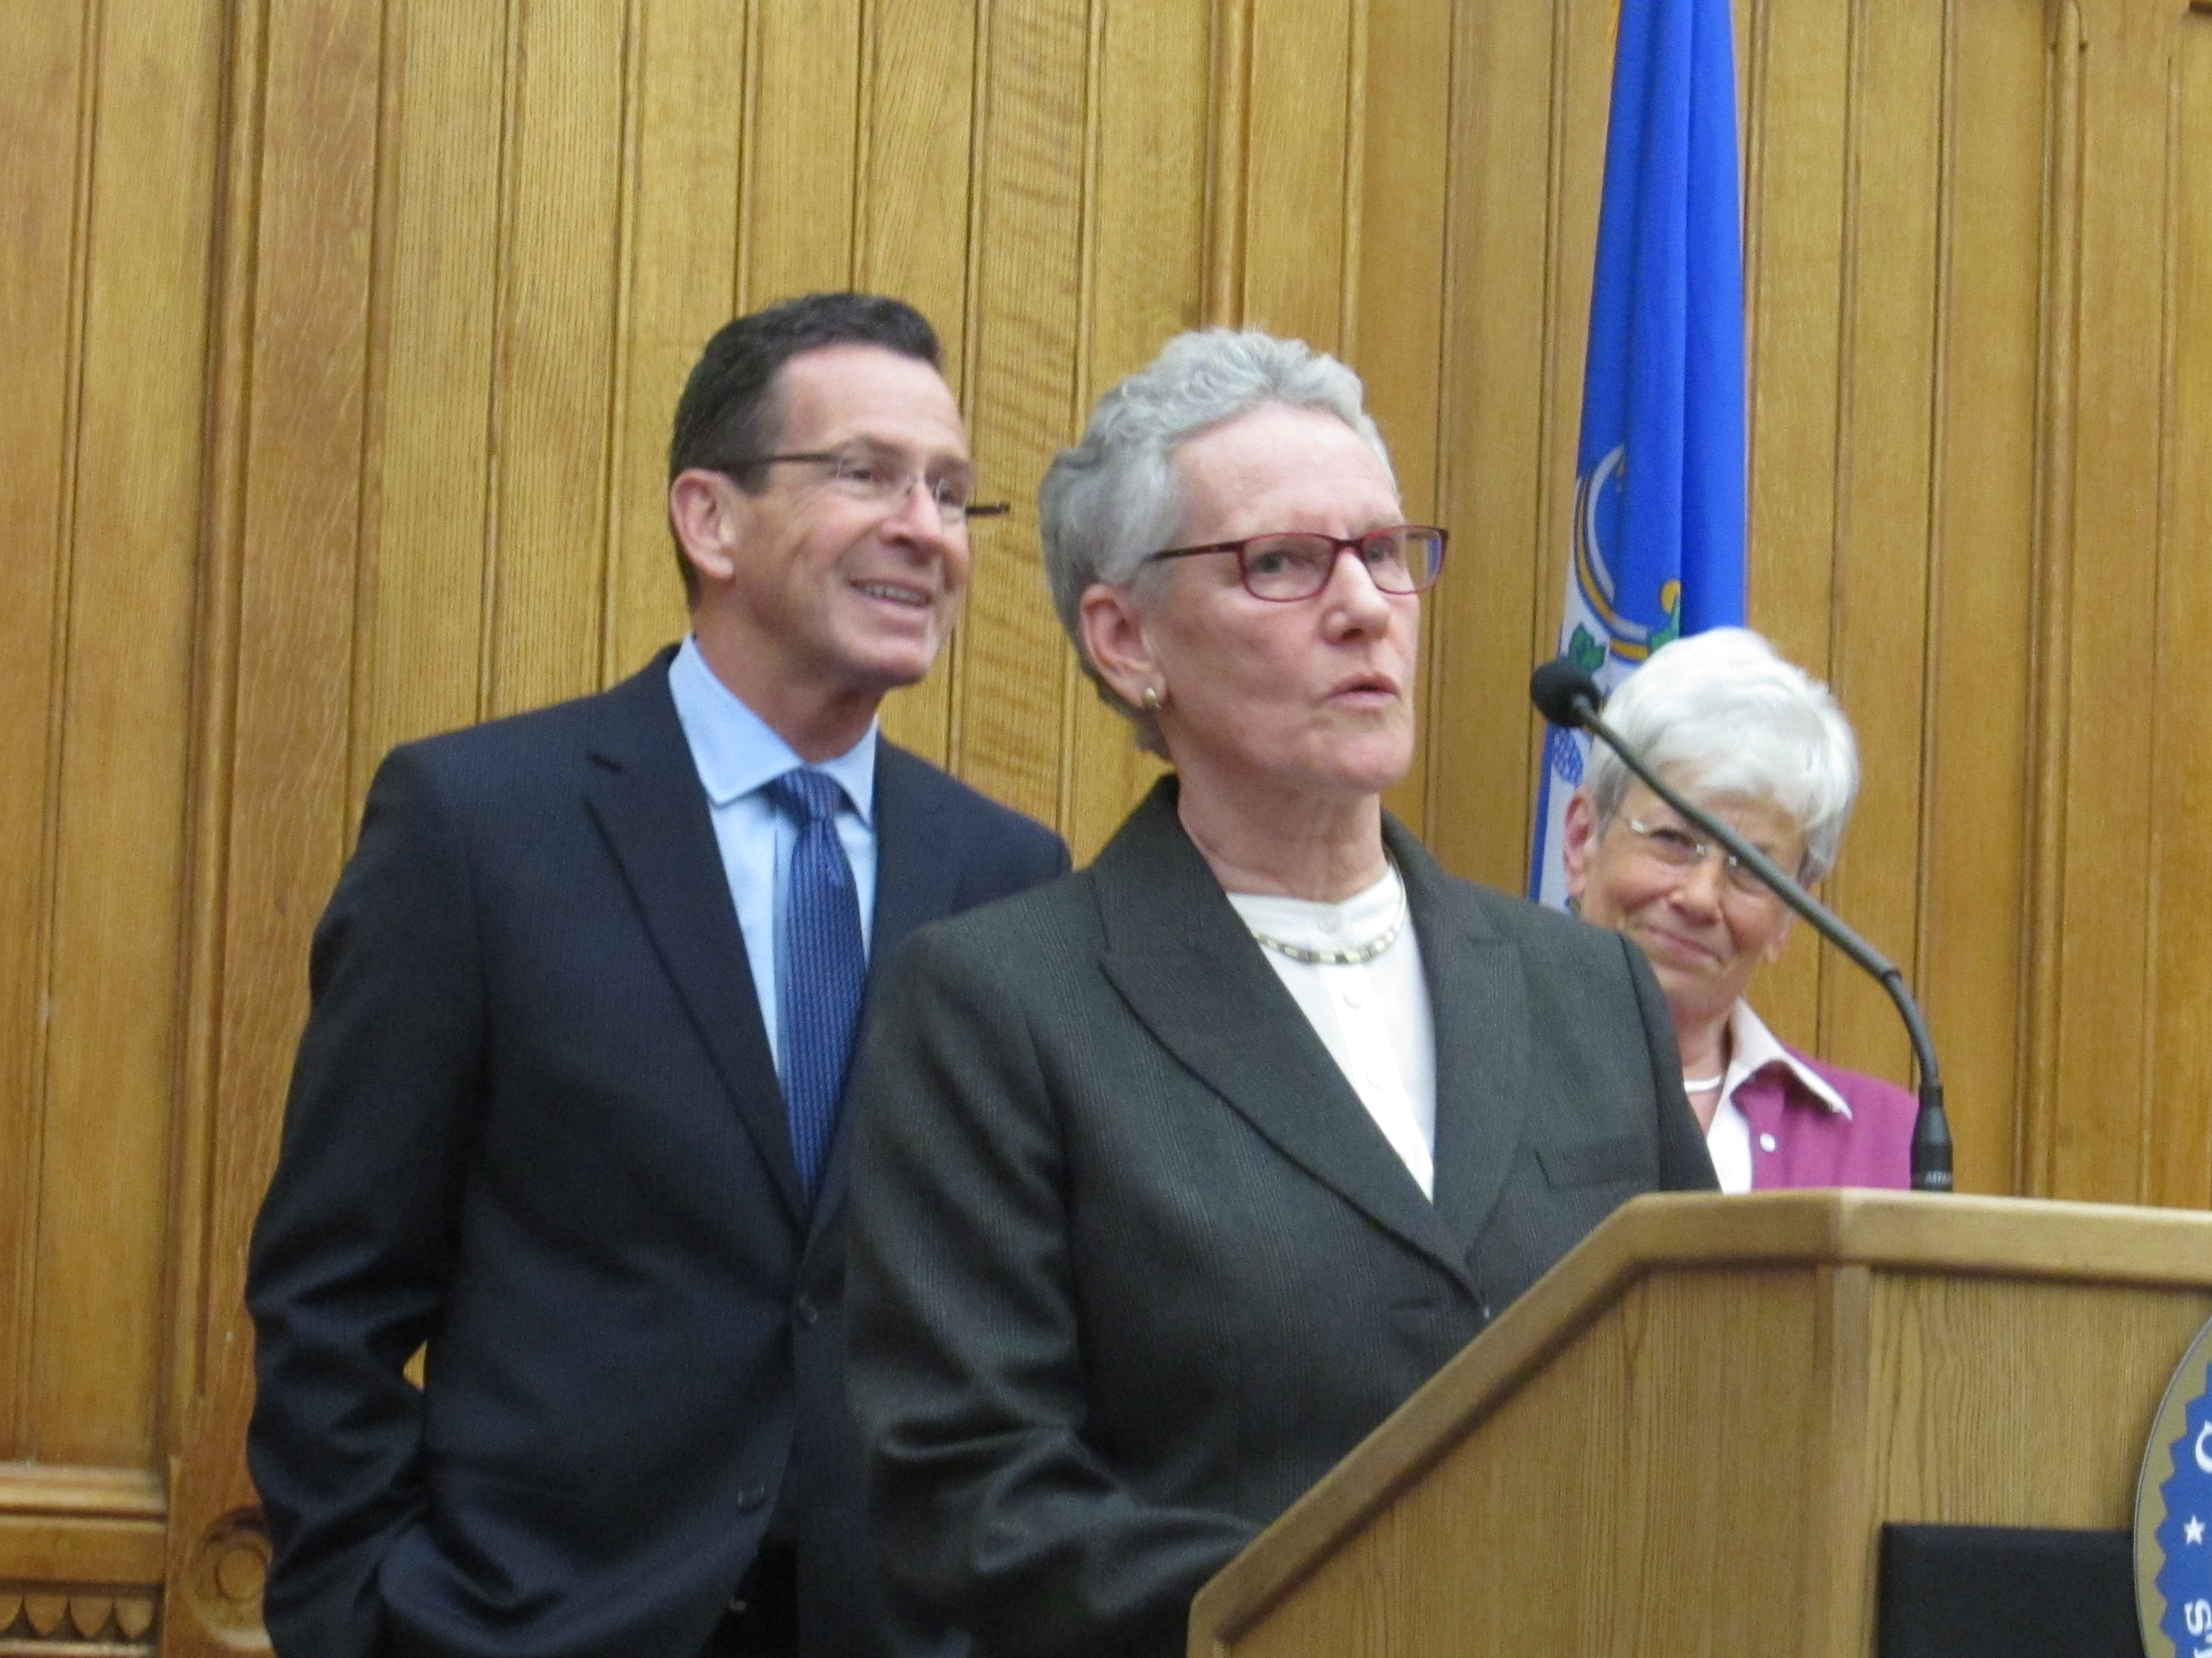 Betsy Ritter with Gov. Dannel P. Malloy and Lt. Gov. Nancy Wyman.